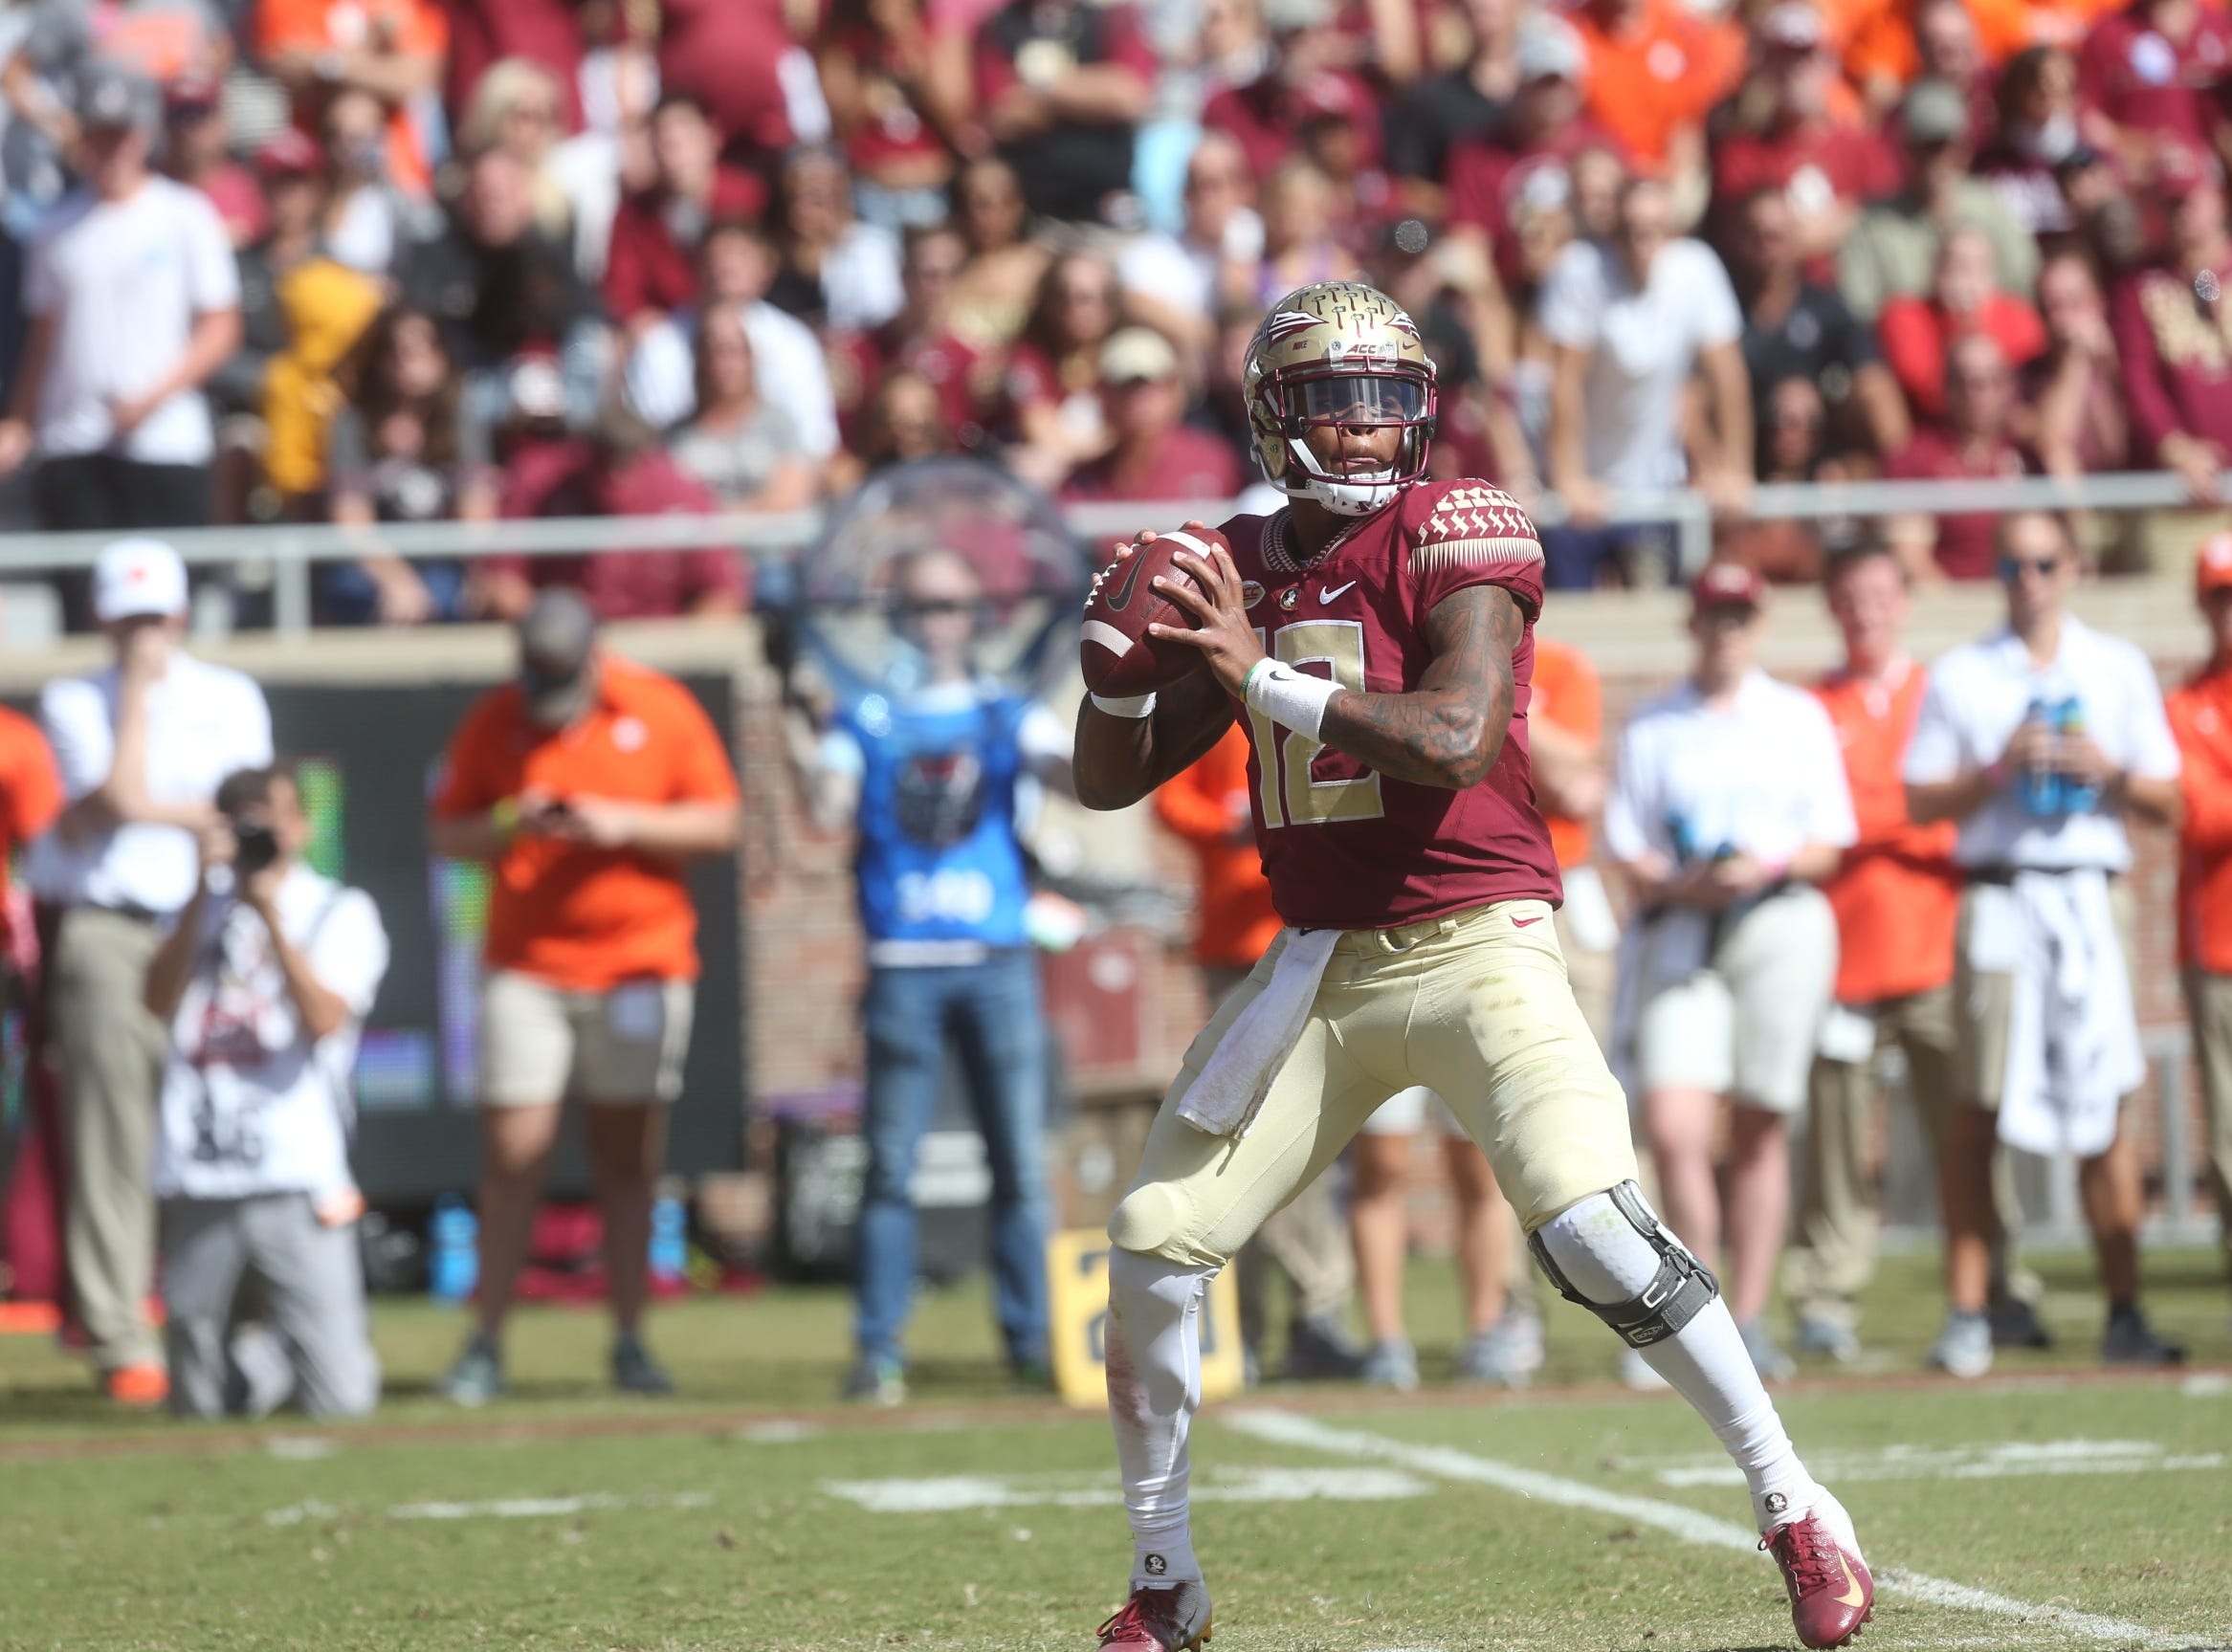 Florida State Seminoles quarterback Deondre Francois (12) looks for an open player to pass to as the Florida State Seminoles take on the Clemson Tigers in college football at Doak Stadium on Saturday, Oct. 27, 2018.